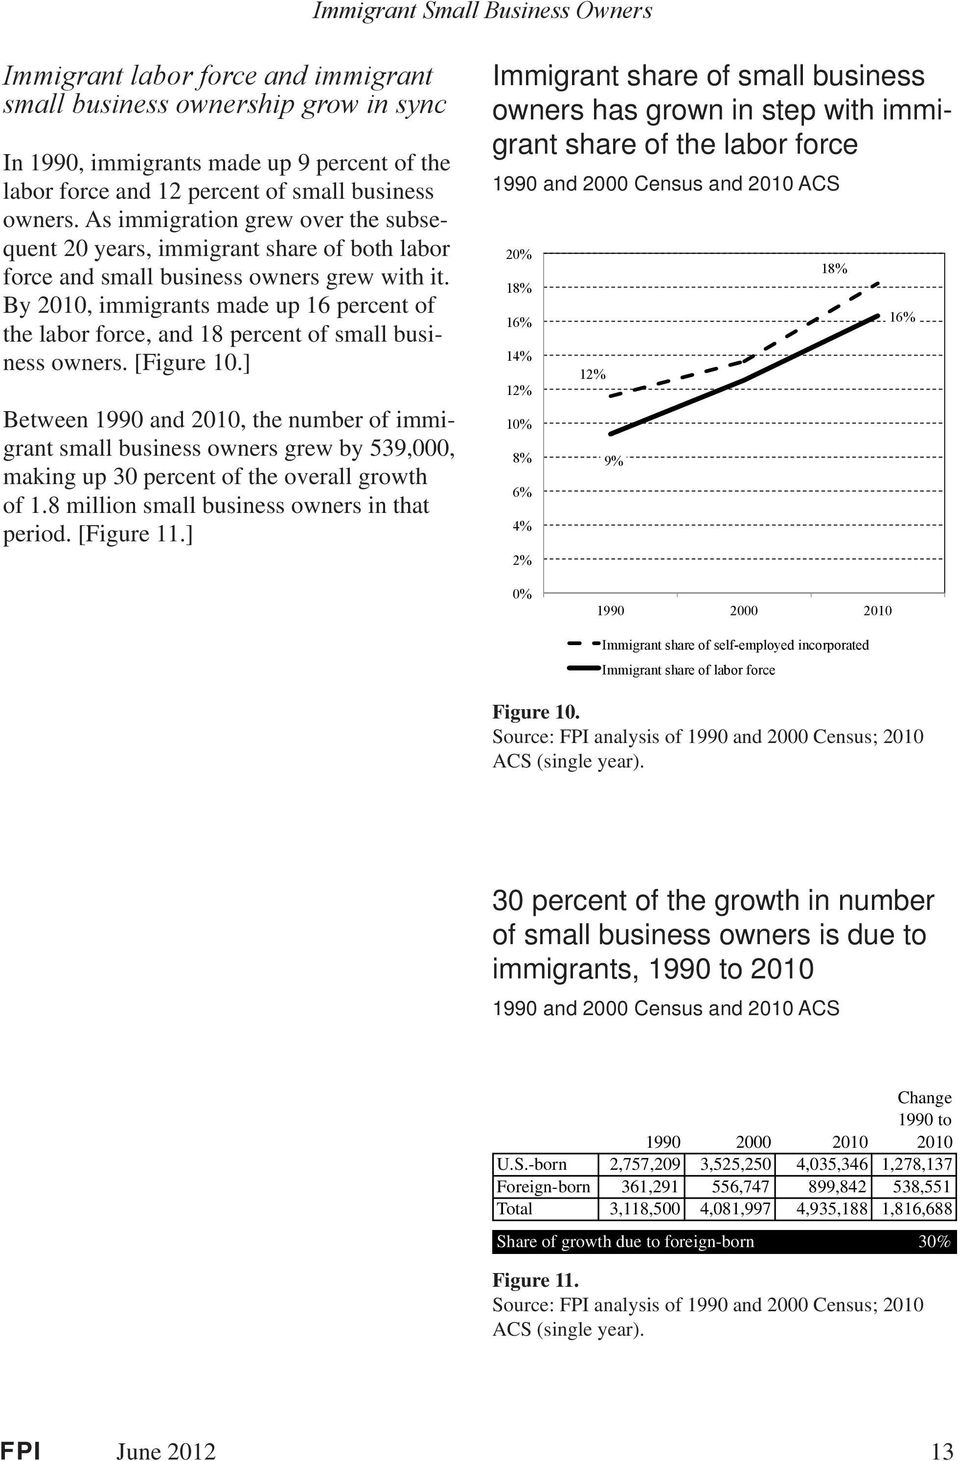 By 2010, immigrants made up 16 percent of the labor force, and 18 percent of small business owners. [Figure 10.